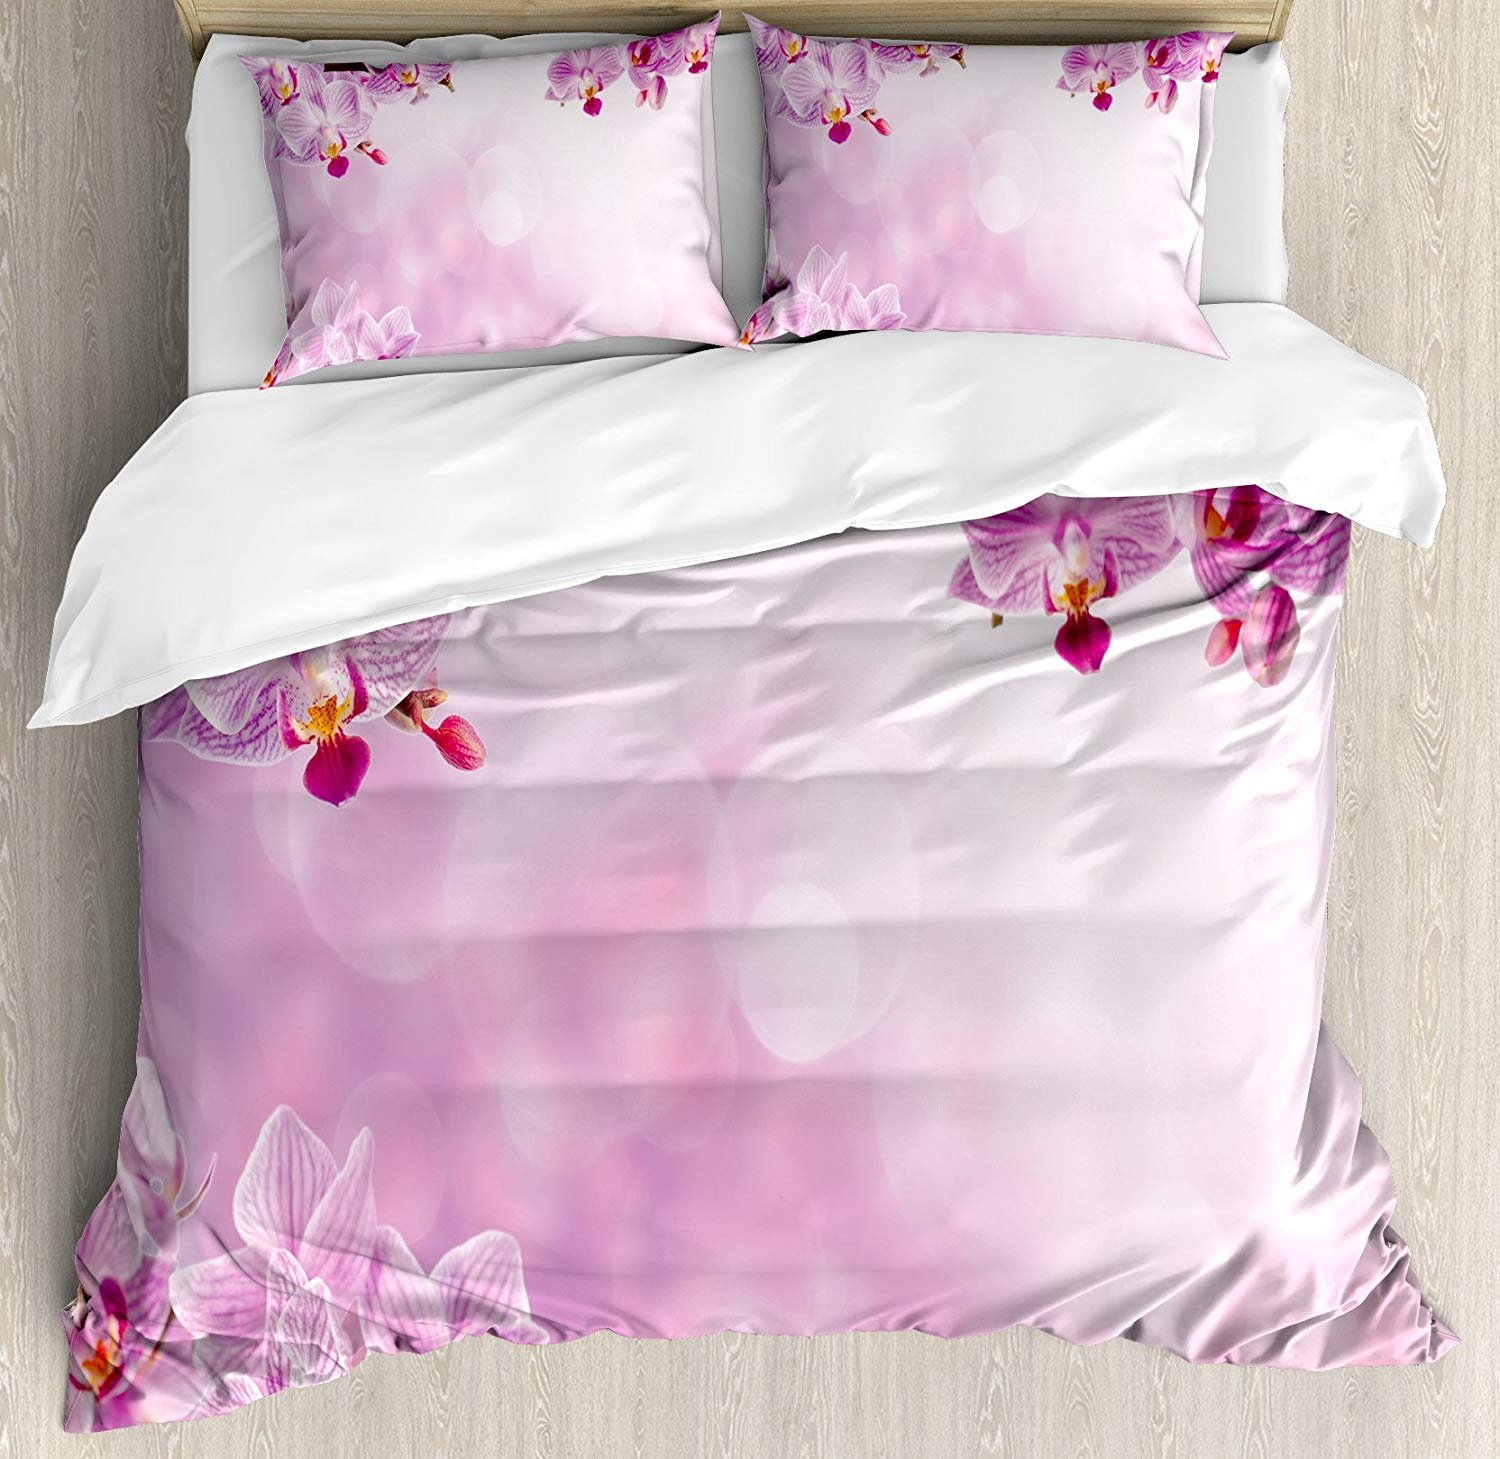 Spa 4 Piece Bedding Set Twin Size, Orchid Petals in Monochrome Design Bouquet Spring Bloom Seedling Growth Peaceful Nature Print, Duvet Cover Set Quilt Bedspread for Childrens/Kids/Teens/Adults, Pink